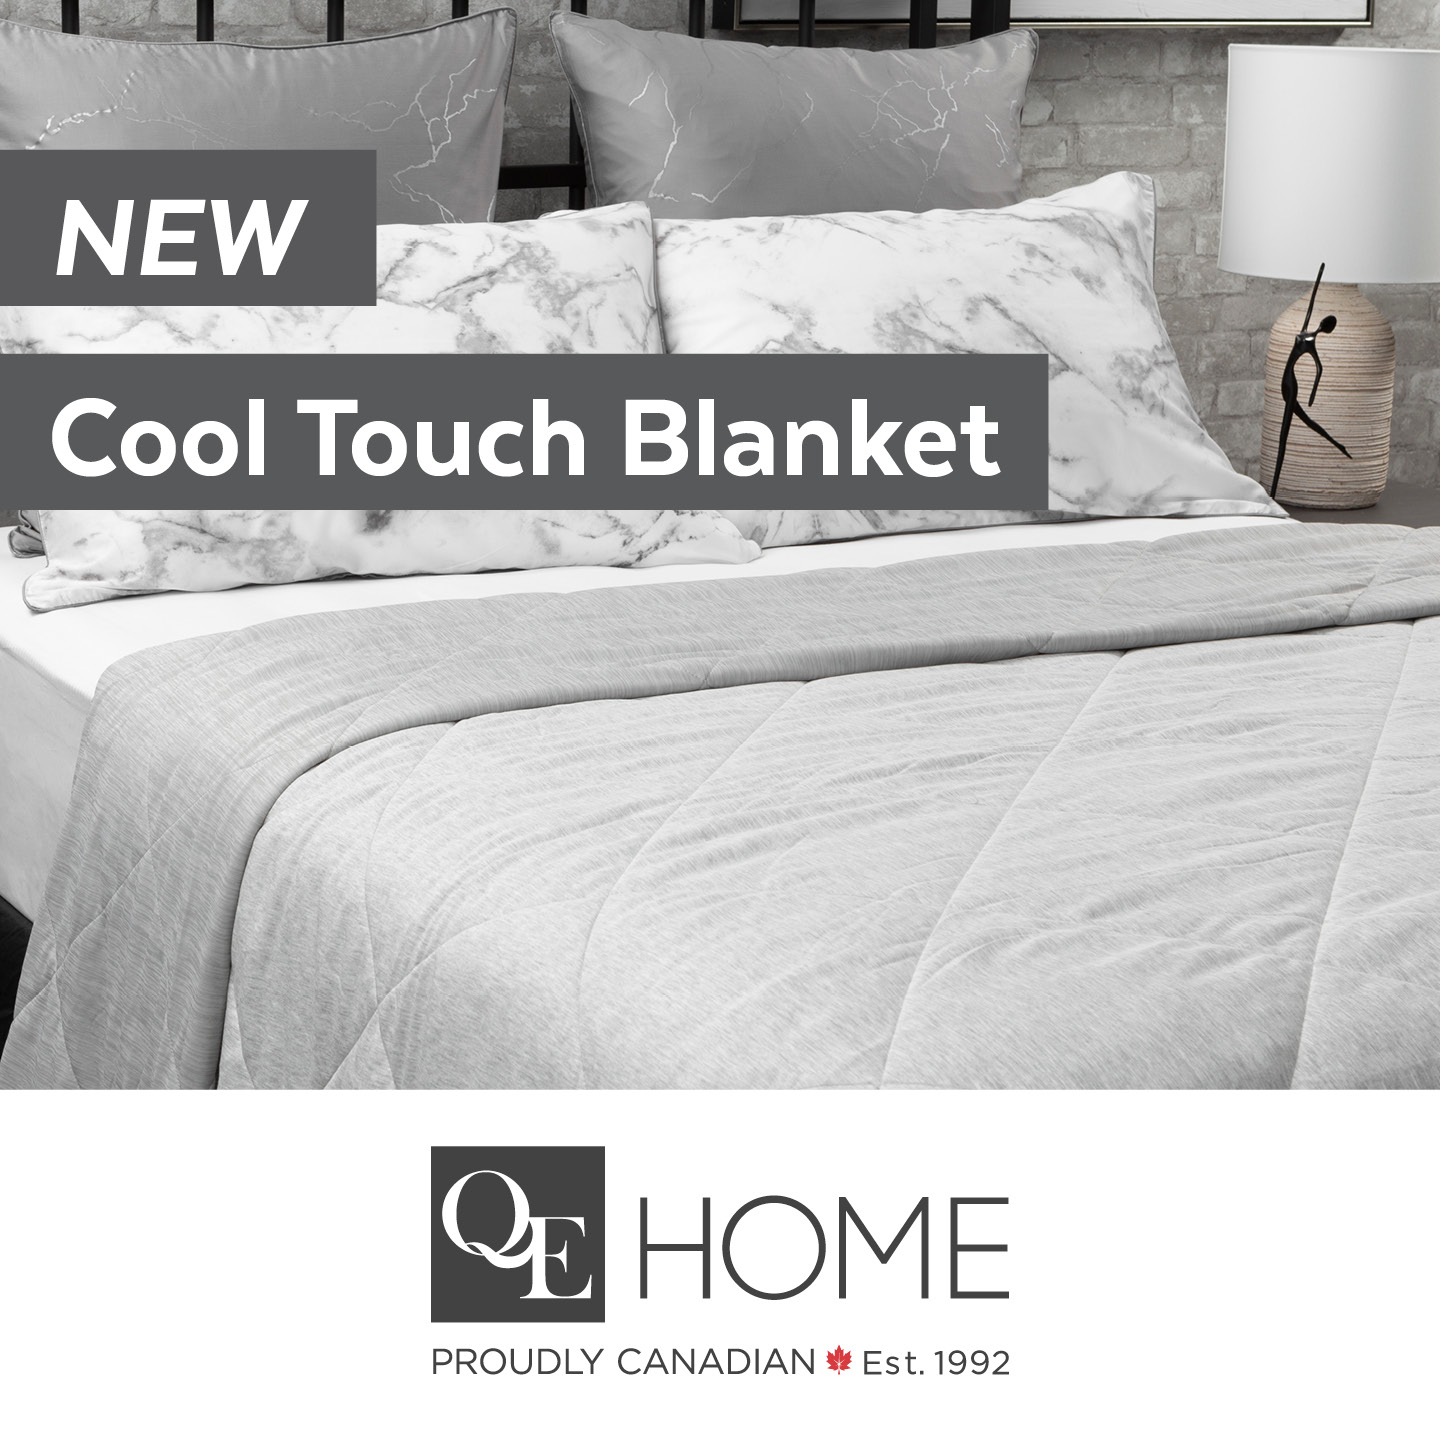 Grey quilted bedding from QE Home